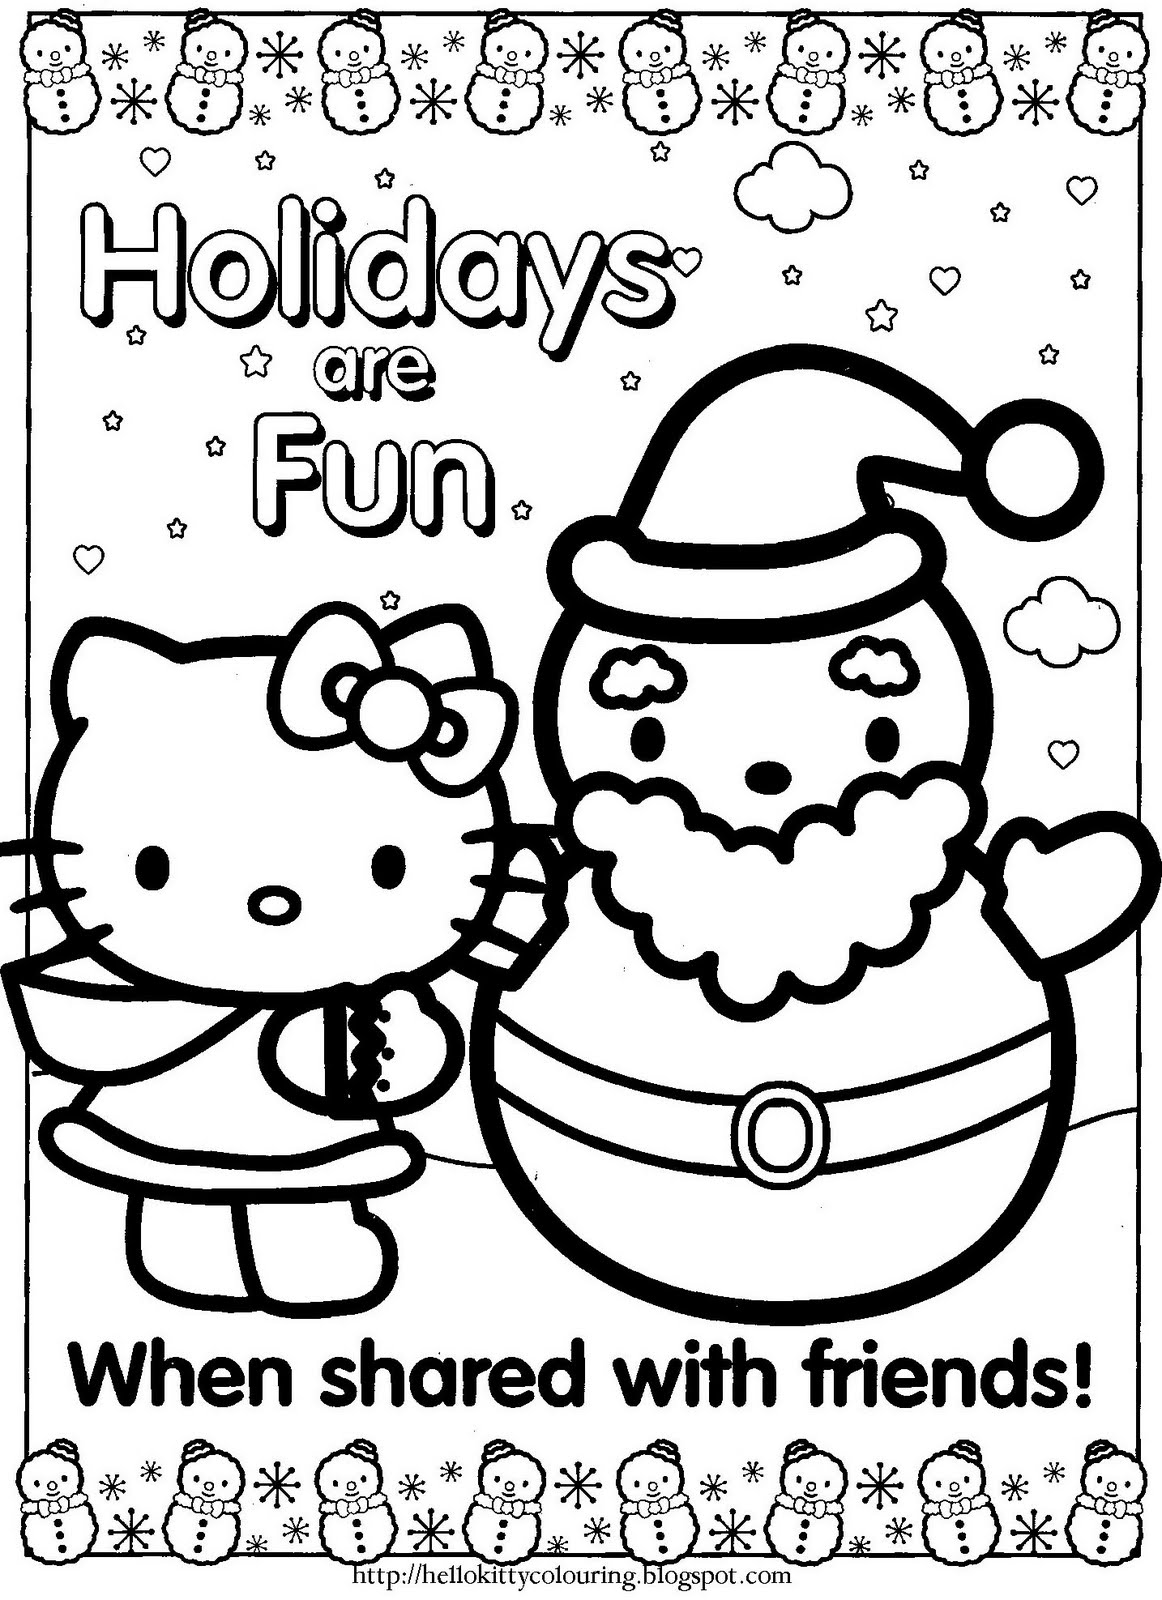 Crayola Free Coloring Pages Holidays Christmas Coloring Page